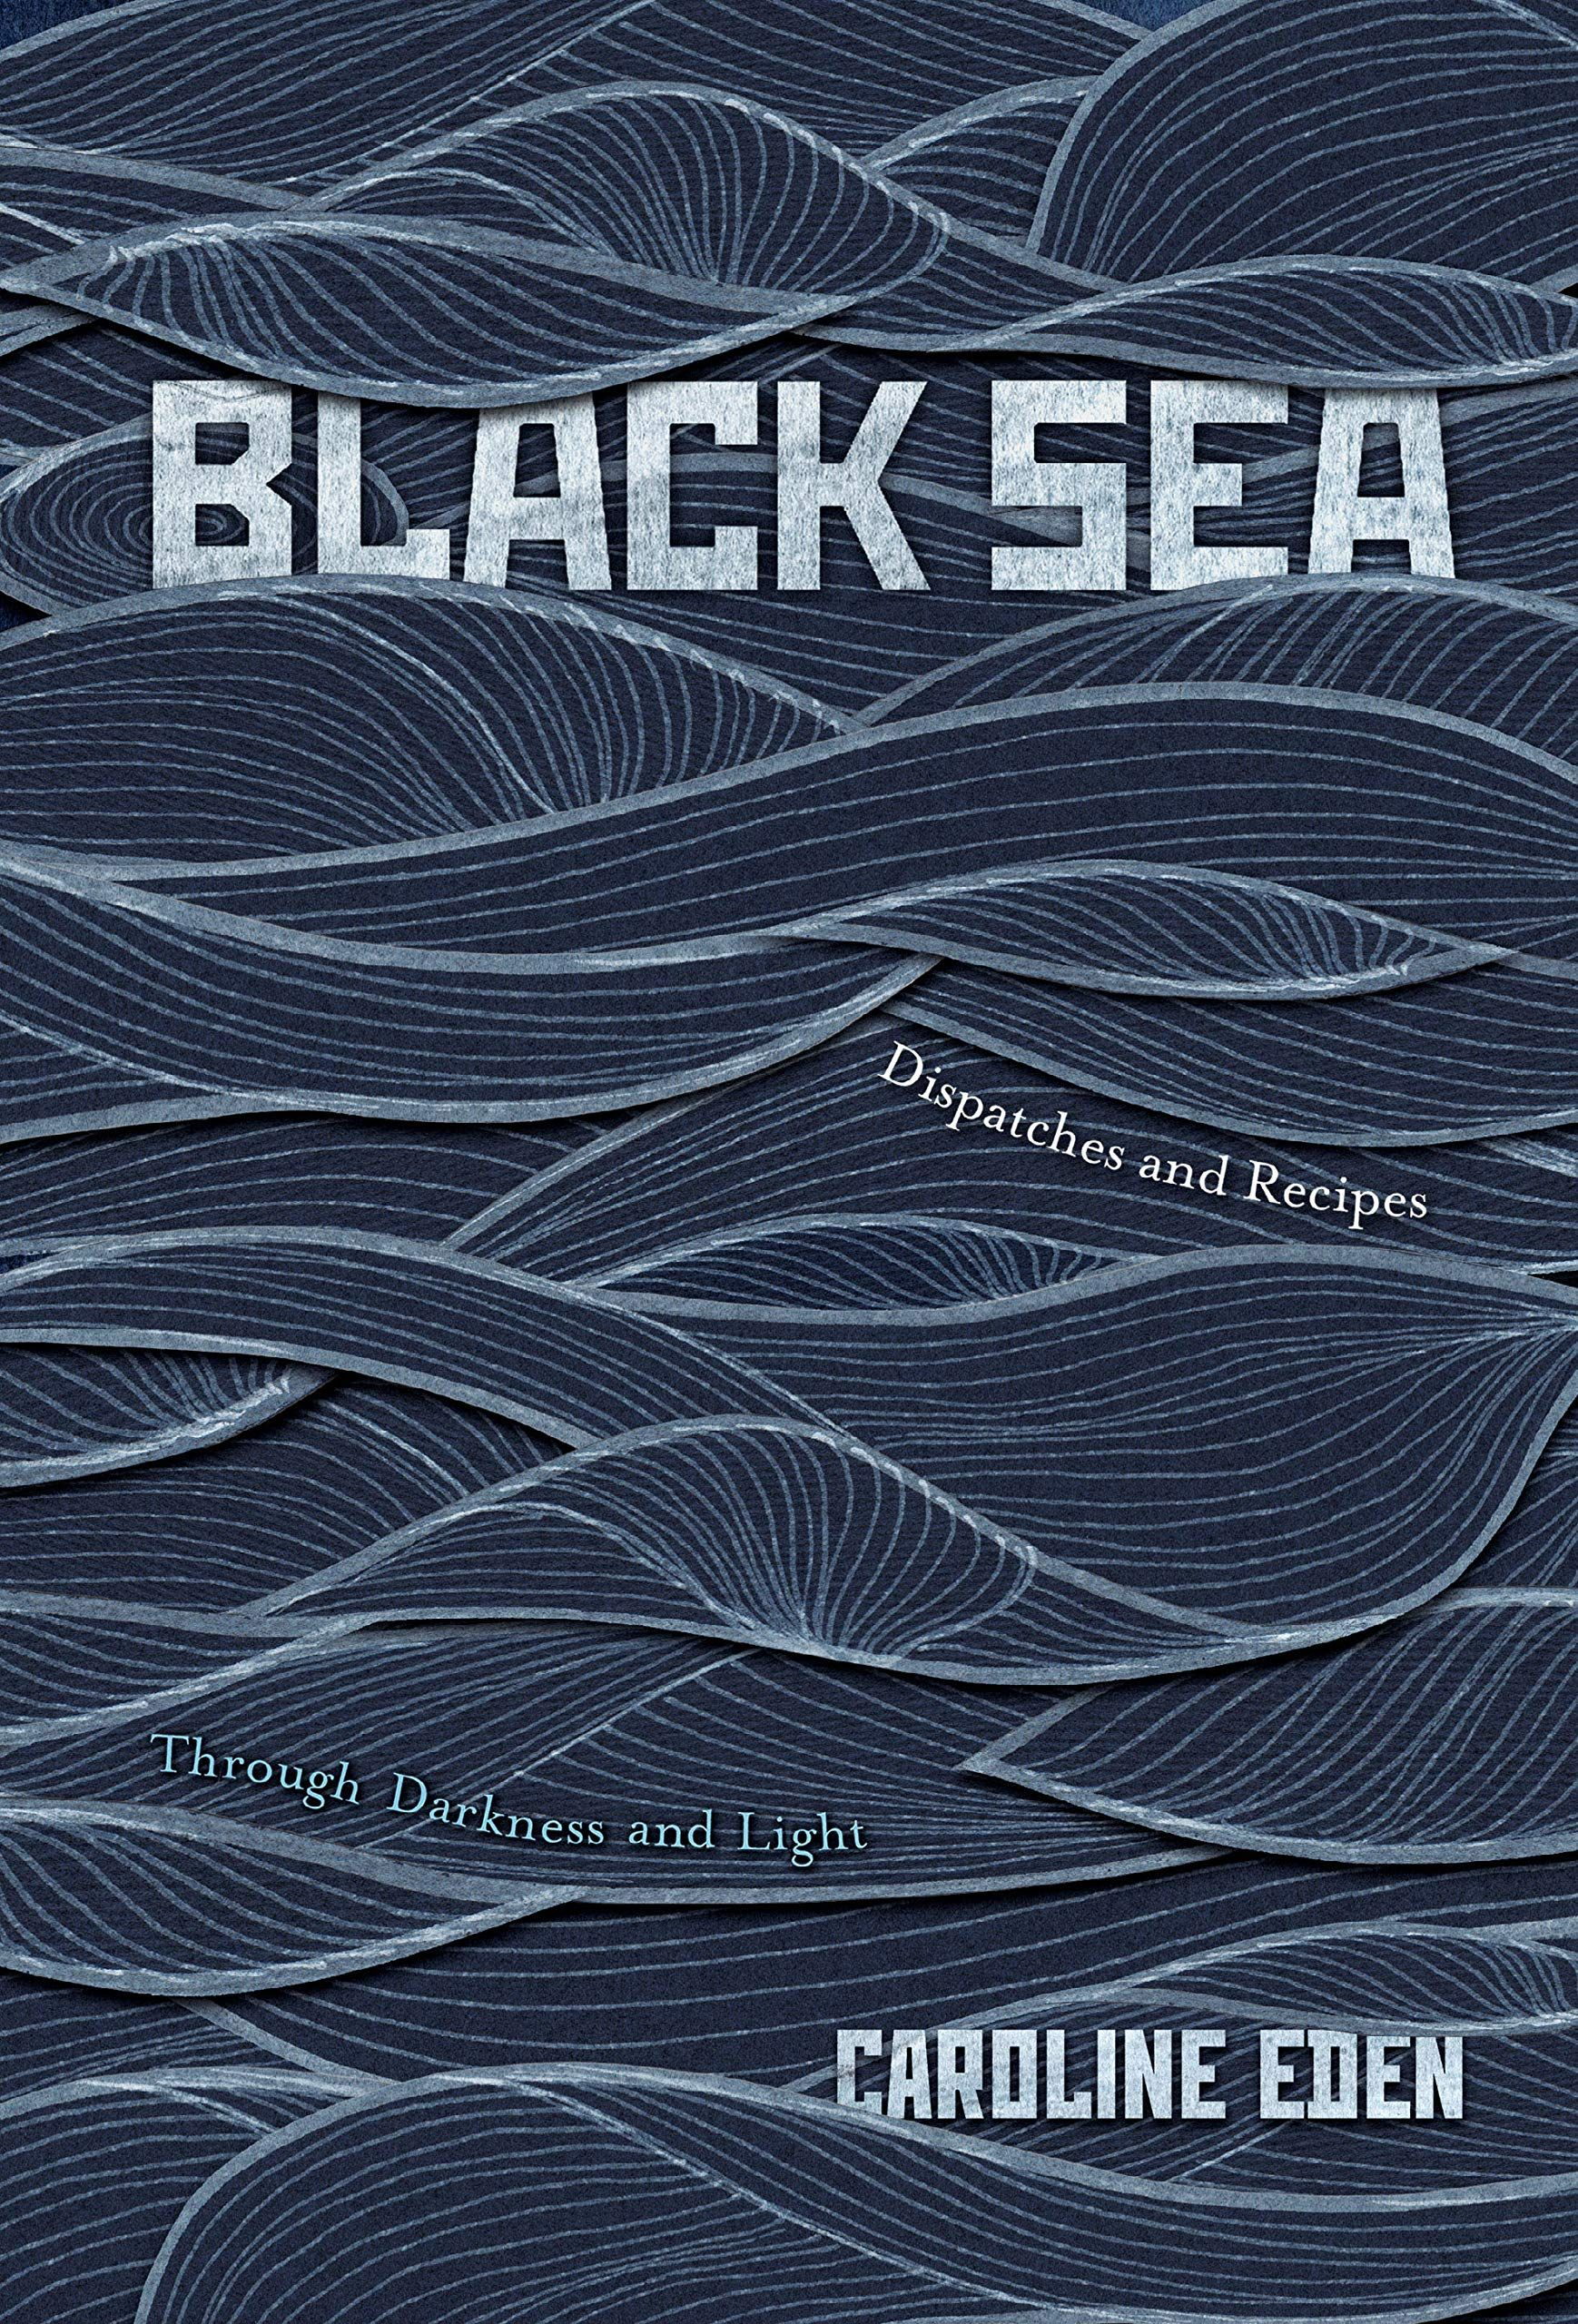 FREE DOWNLOAD Black Sea: Dispatches and Recipes – Through